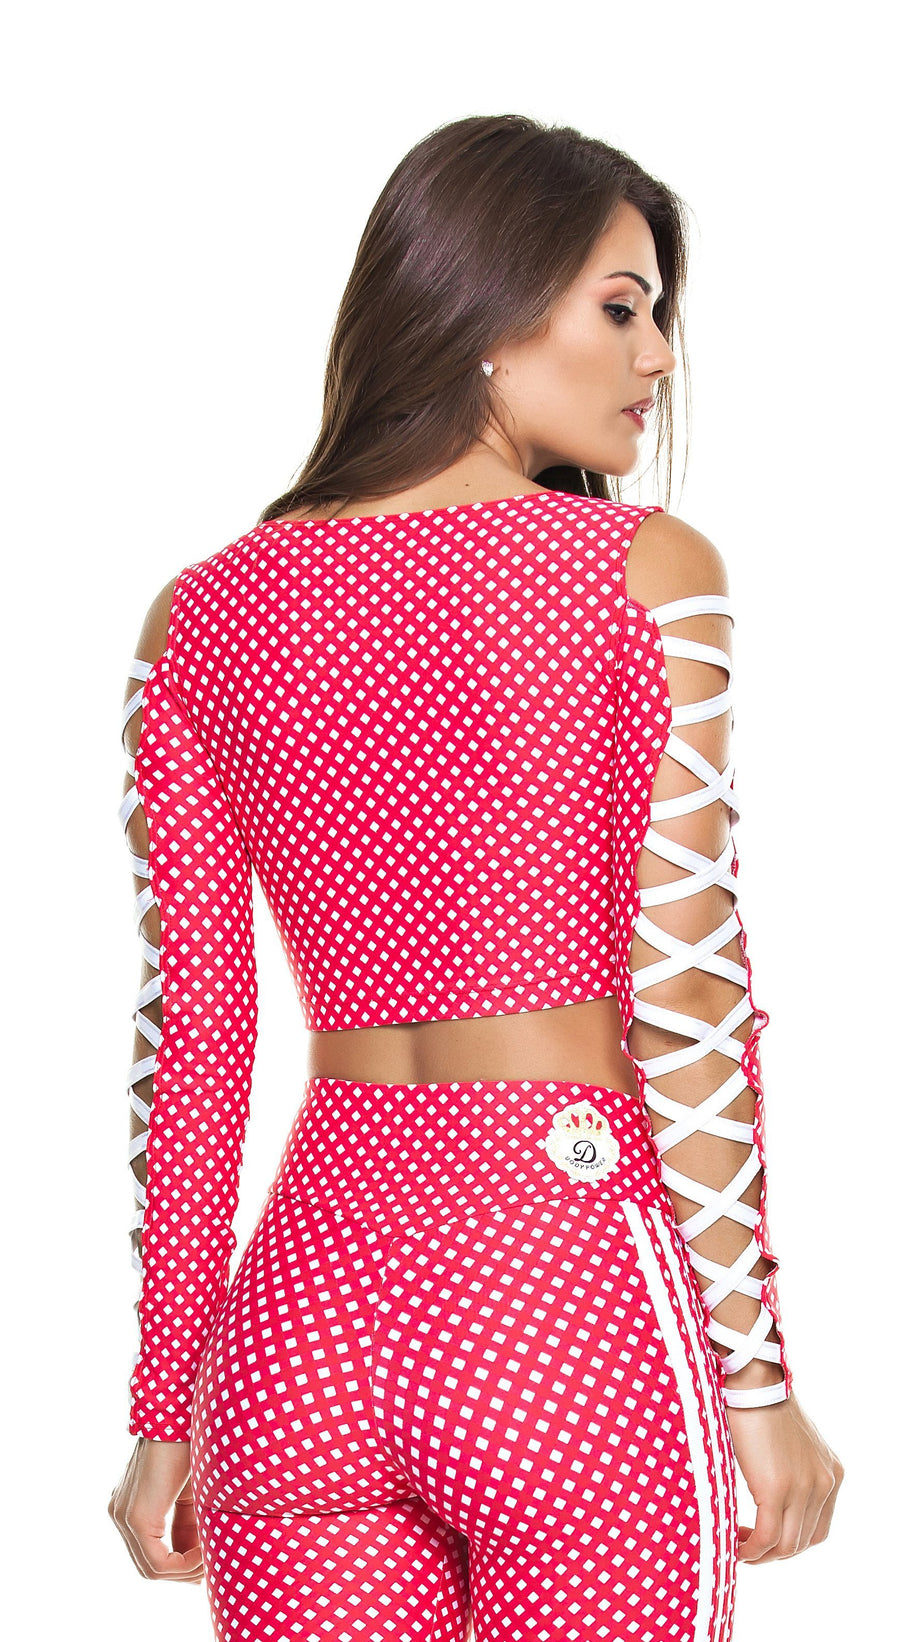 Brazilian Sports Top - Top Cropped Stripes & Plaid Red/White